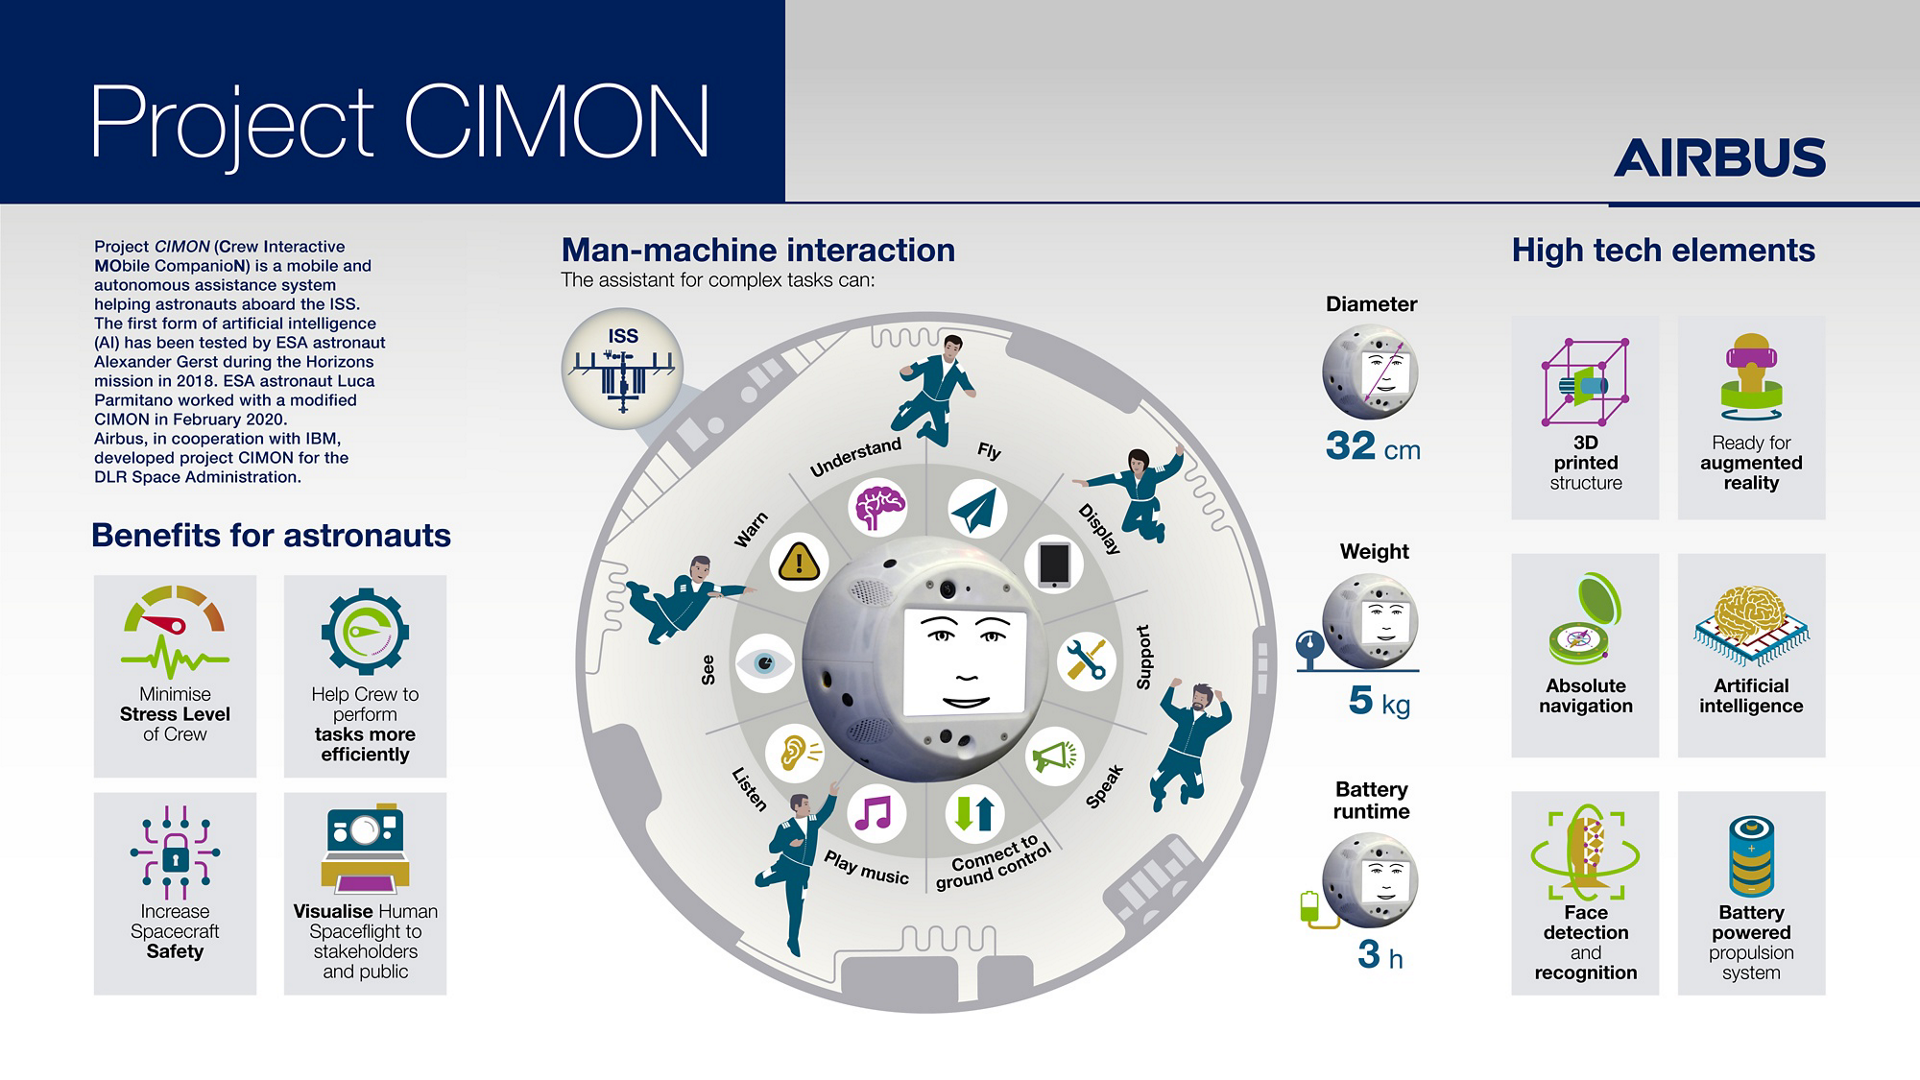 Project CIMON (Crew Interactive Mobile CompanioN) is a mobile and autonomous assistance system designed to aid astronauts with their everyday tasks on the ISS.